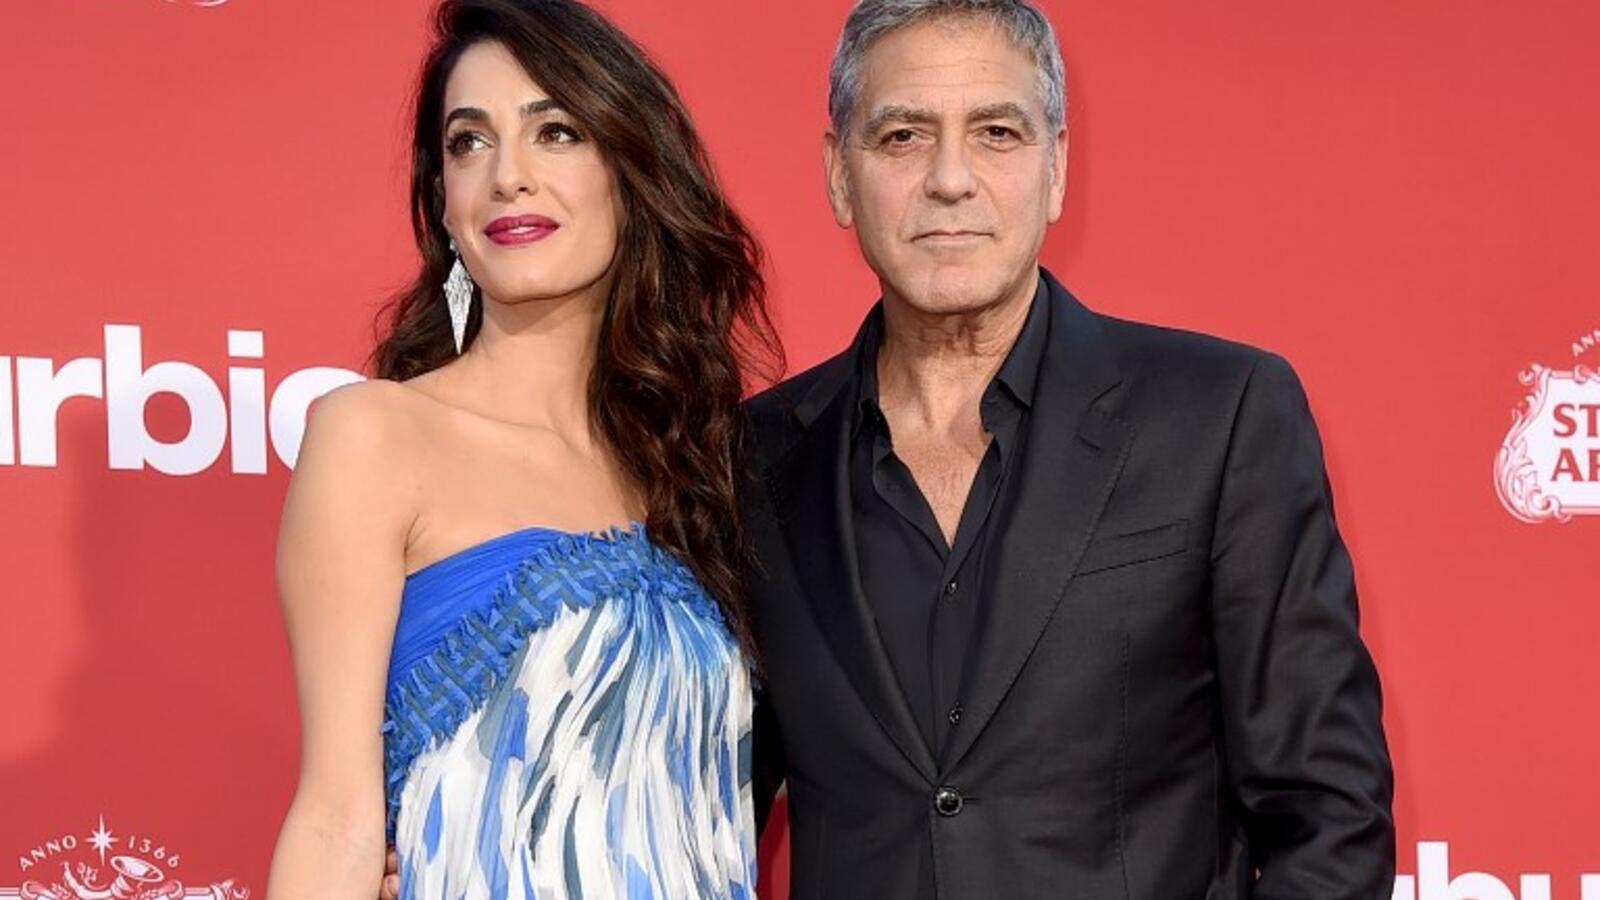 Amal and George Clooney. (KEVIN WINTER / GETTY IMAGES NORTH AMERICA / AFP)